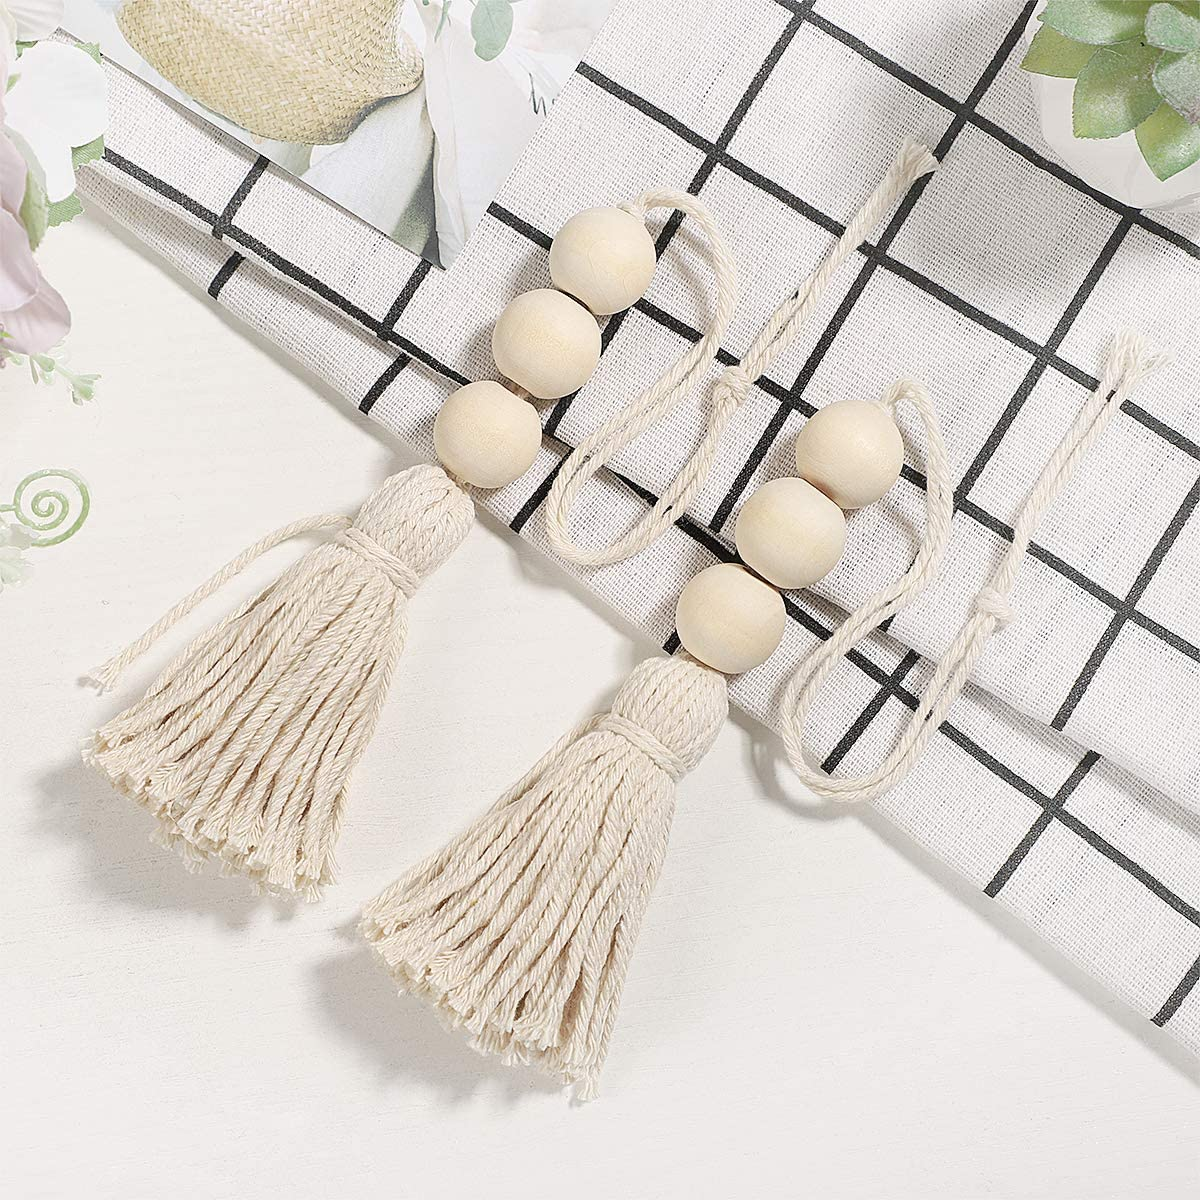 Beads Ornaments, Wood Bead Garland Farmhouse Rustic Beads with Country Tassels Home Decor, 4 pcs